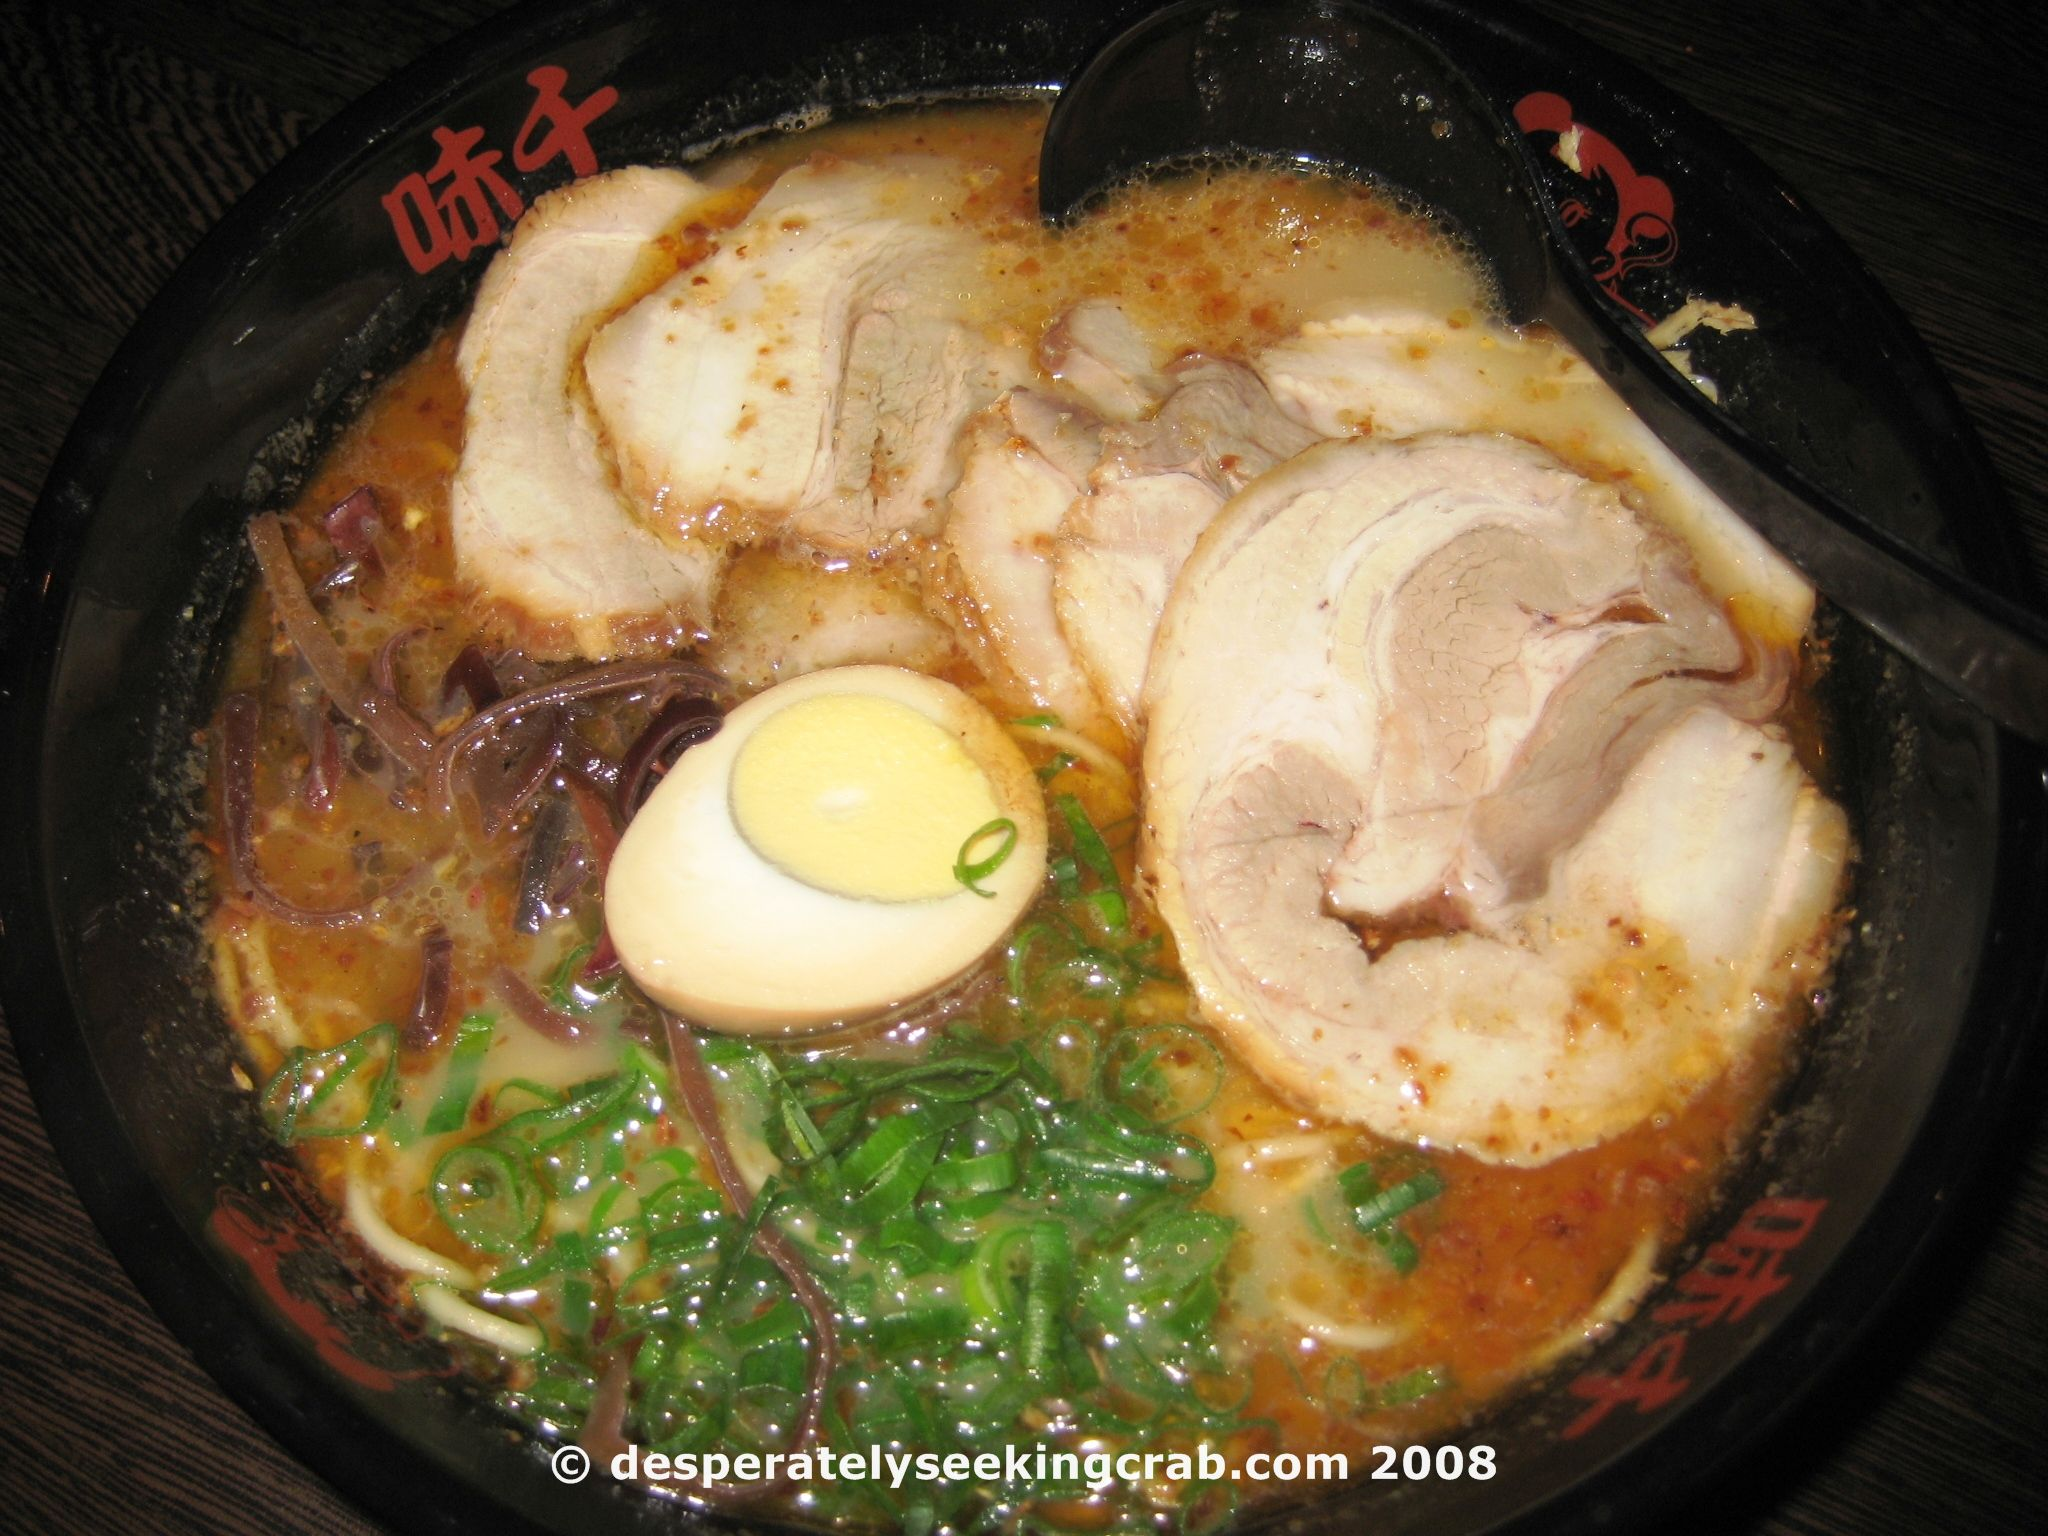 ... chicken chashu bowl over stored chashu sauce to serve the chashu